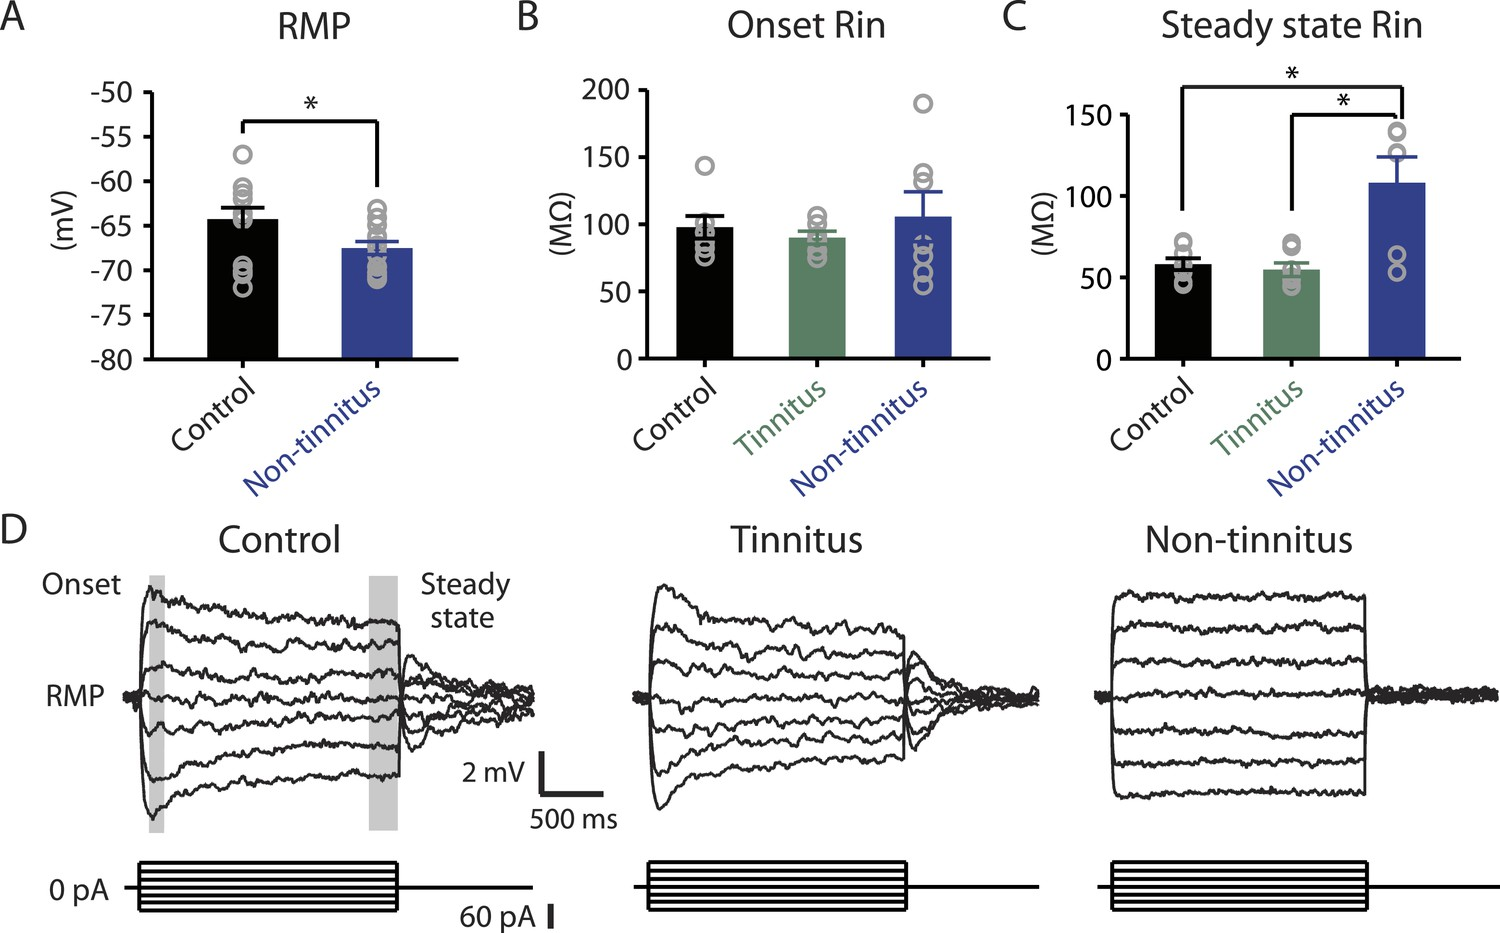 Noise Induced Plasticity Of Kcnq2 3 And Hcn Channels Underlies Electrical Block Diagram Definition Moreover Marine Non Tinnitus Mice Are Biophysically Distinct From Control